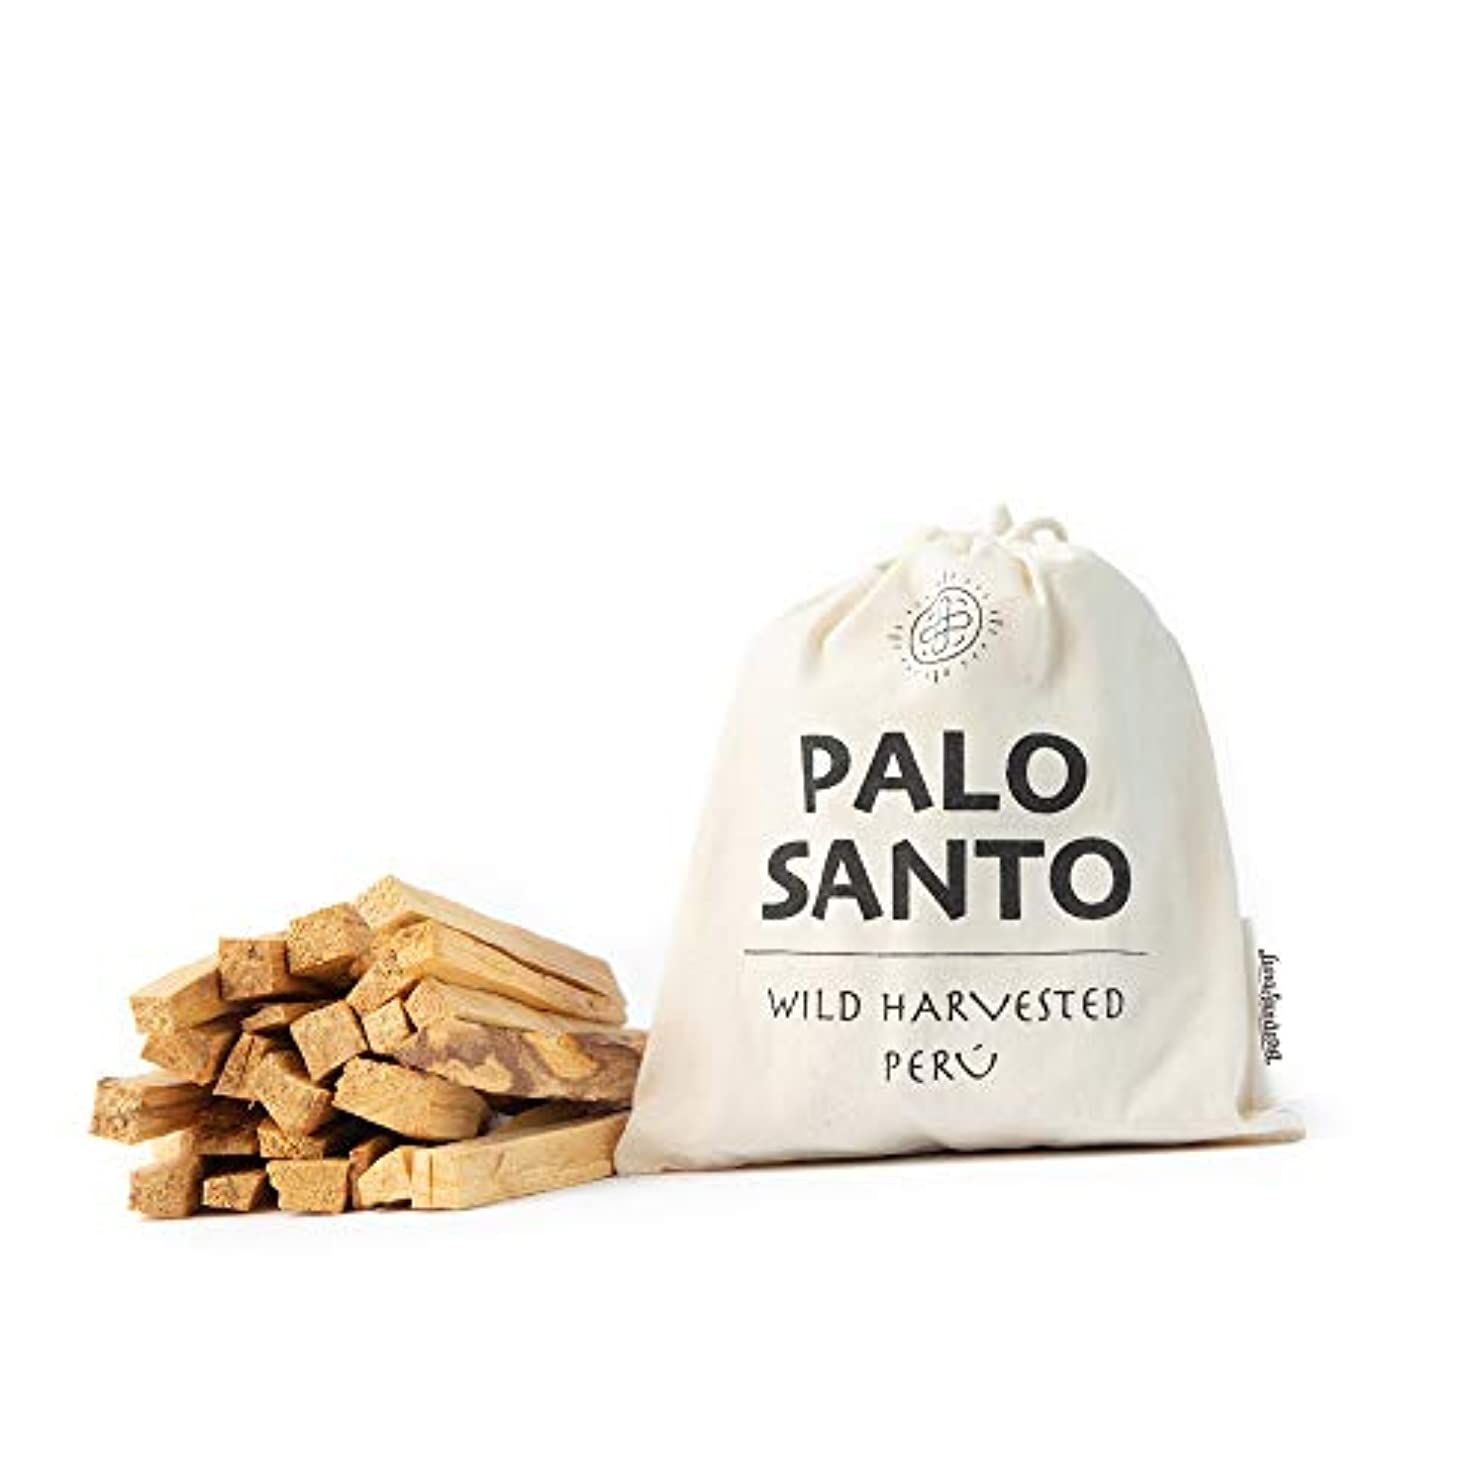 腸手配する分割Luna Sundara Palo Santo Smudging Sticks Peru Sustainably Harvested Quality Hand Picked - 100グラム(約18-25スティック)